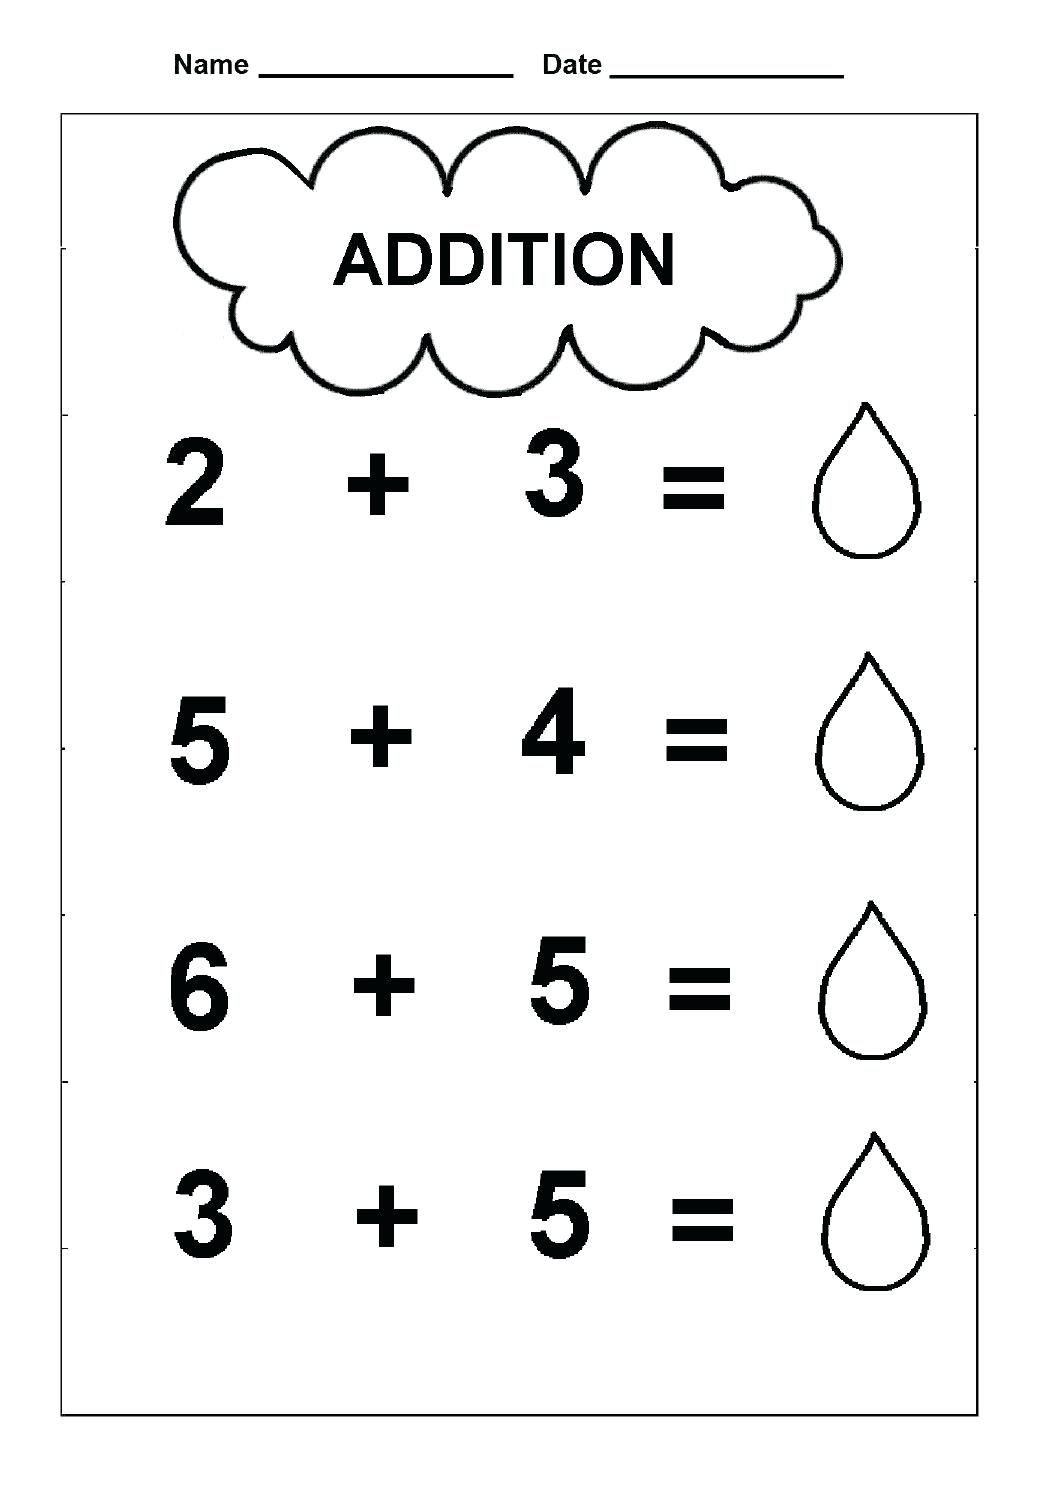 Preschool Addition Worksheets Printable Free Simple Addition Worksheets Math Free